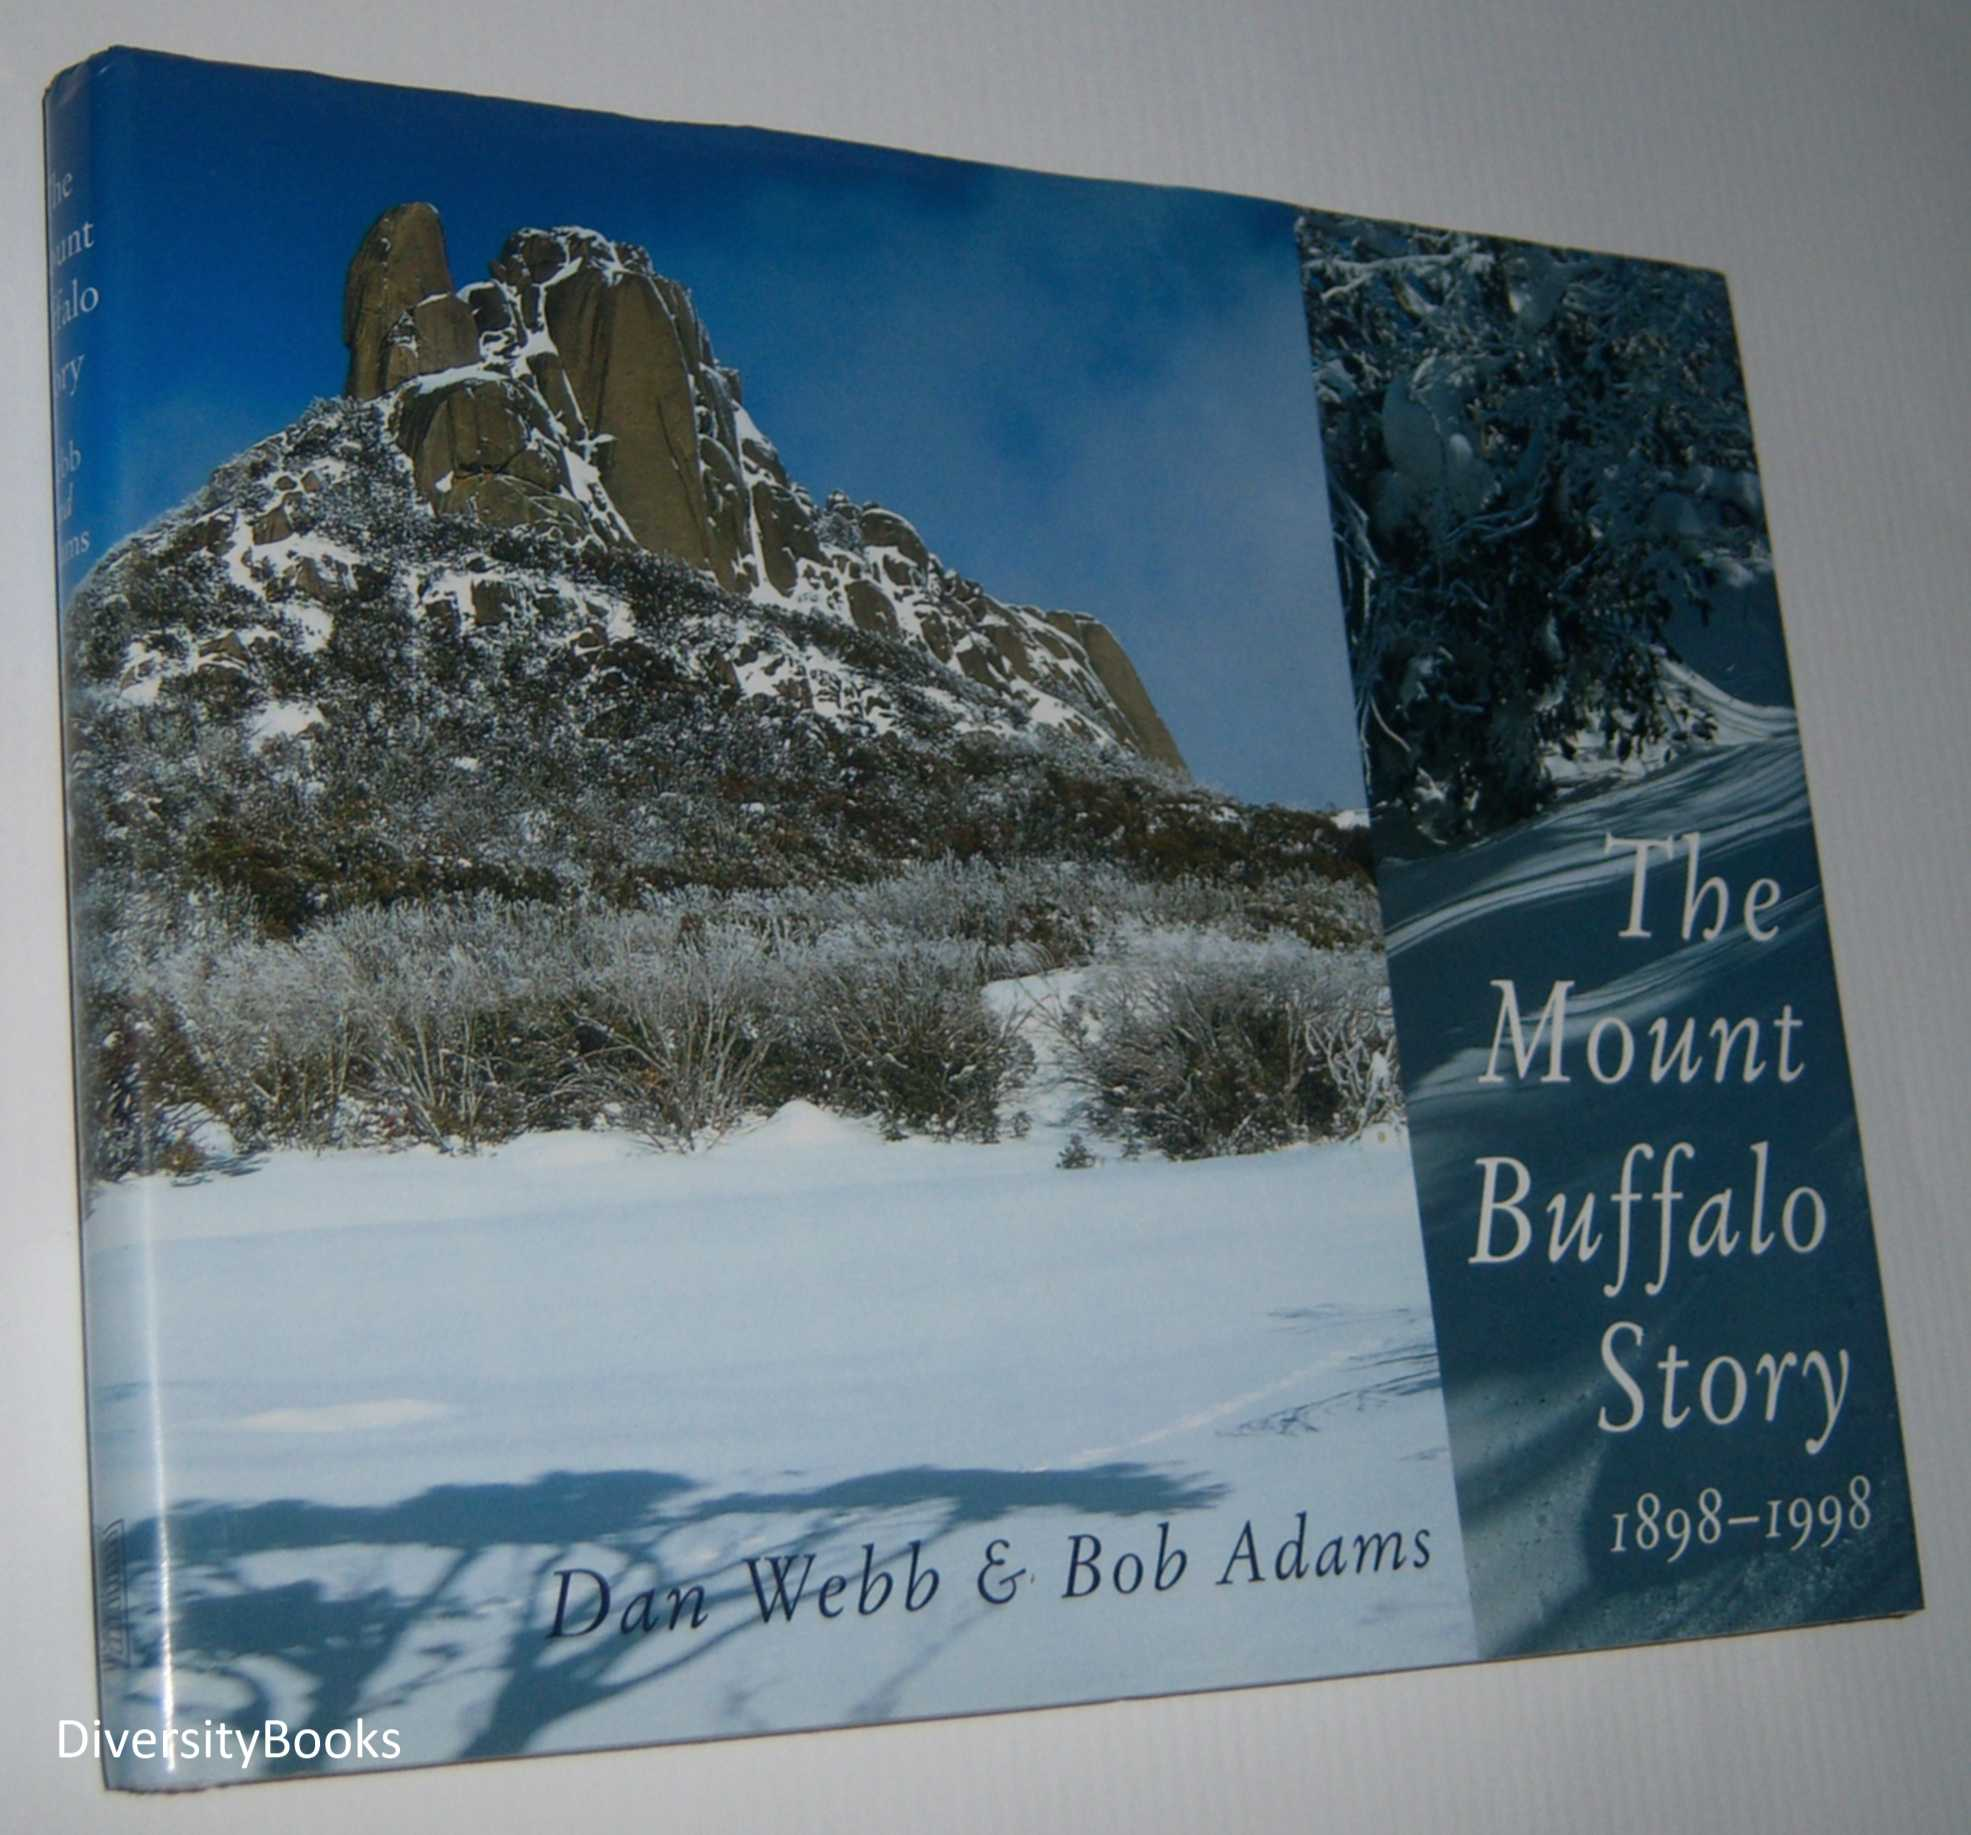 Image for THE MOUNT BUFFALO STORY 1898-1998  (Signed Copy)